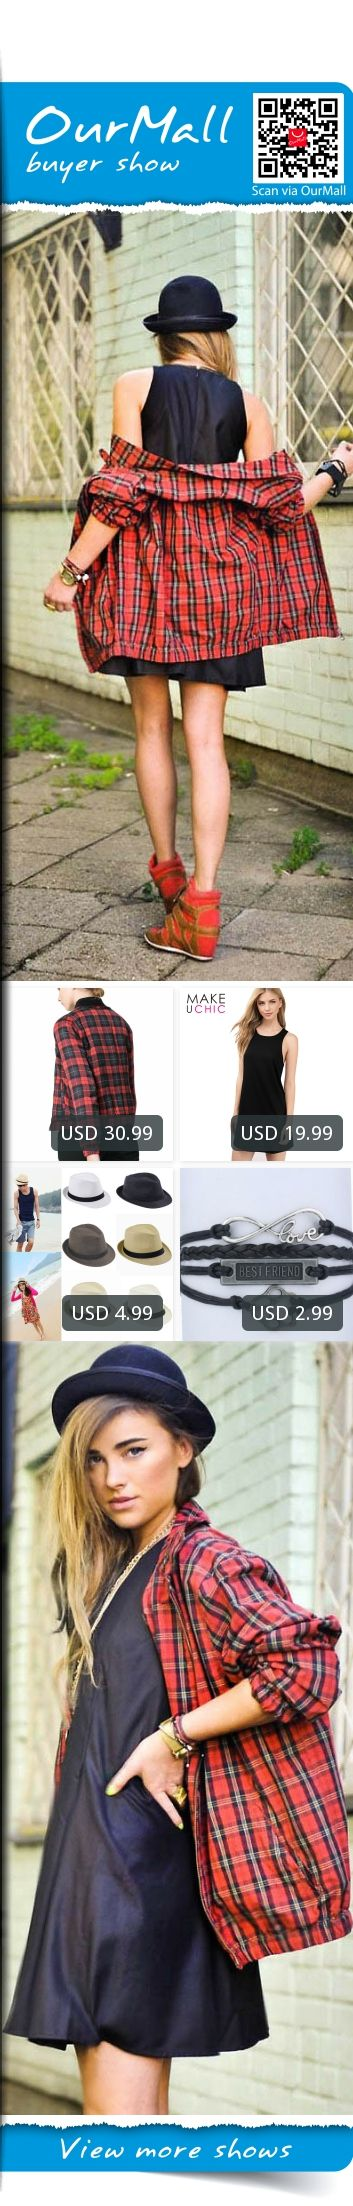 This is Juliett Kuczynska's buyer show in OurMall;  1.Winter Bomber Jacket Women Aviator Jacket Red plaid Baseball Jackets Chaquetas Mujer 2.Loose Sleeveless Women Black Vestido Casual Daliy Sweet Mini Dress White Clothing Sexy 3.for Women Fedora Trilby G